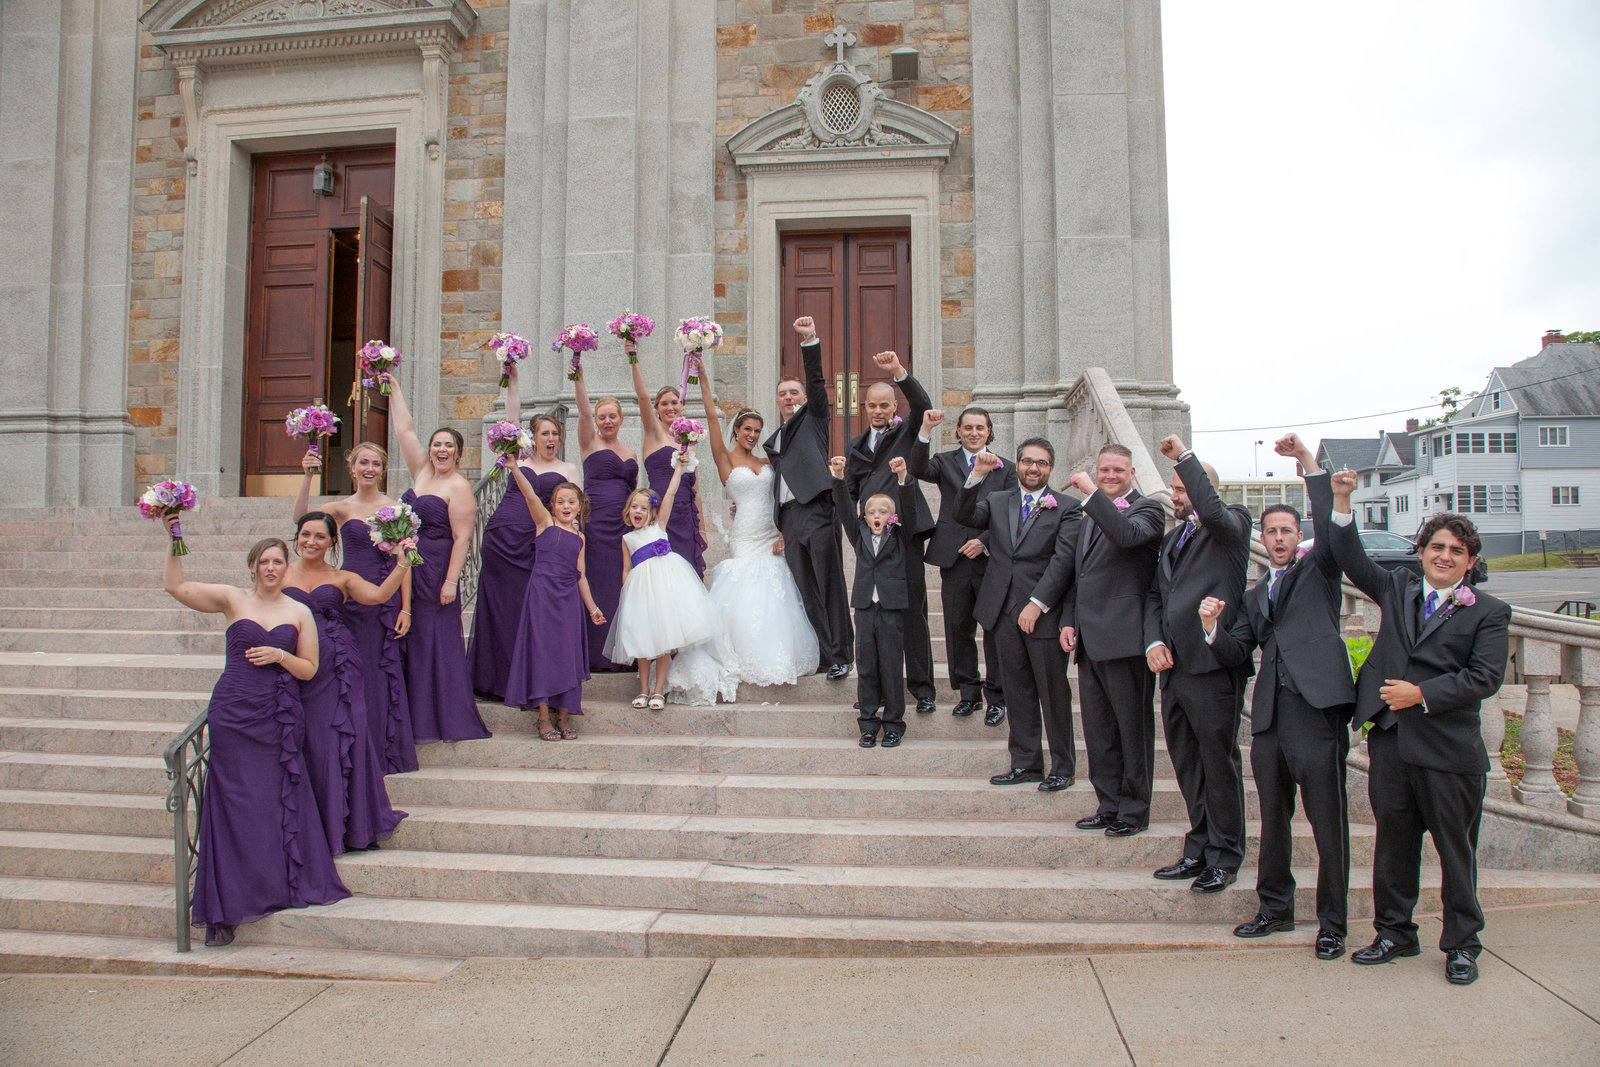 wedding party on front steps of church